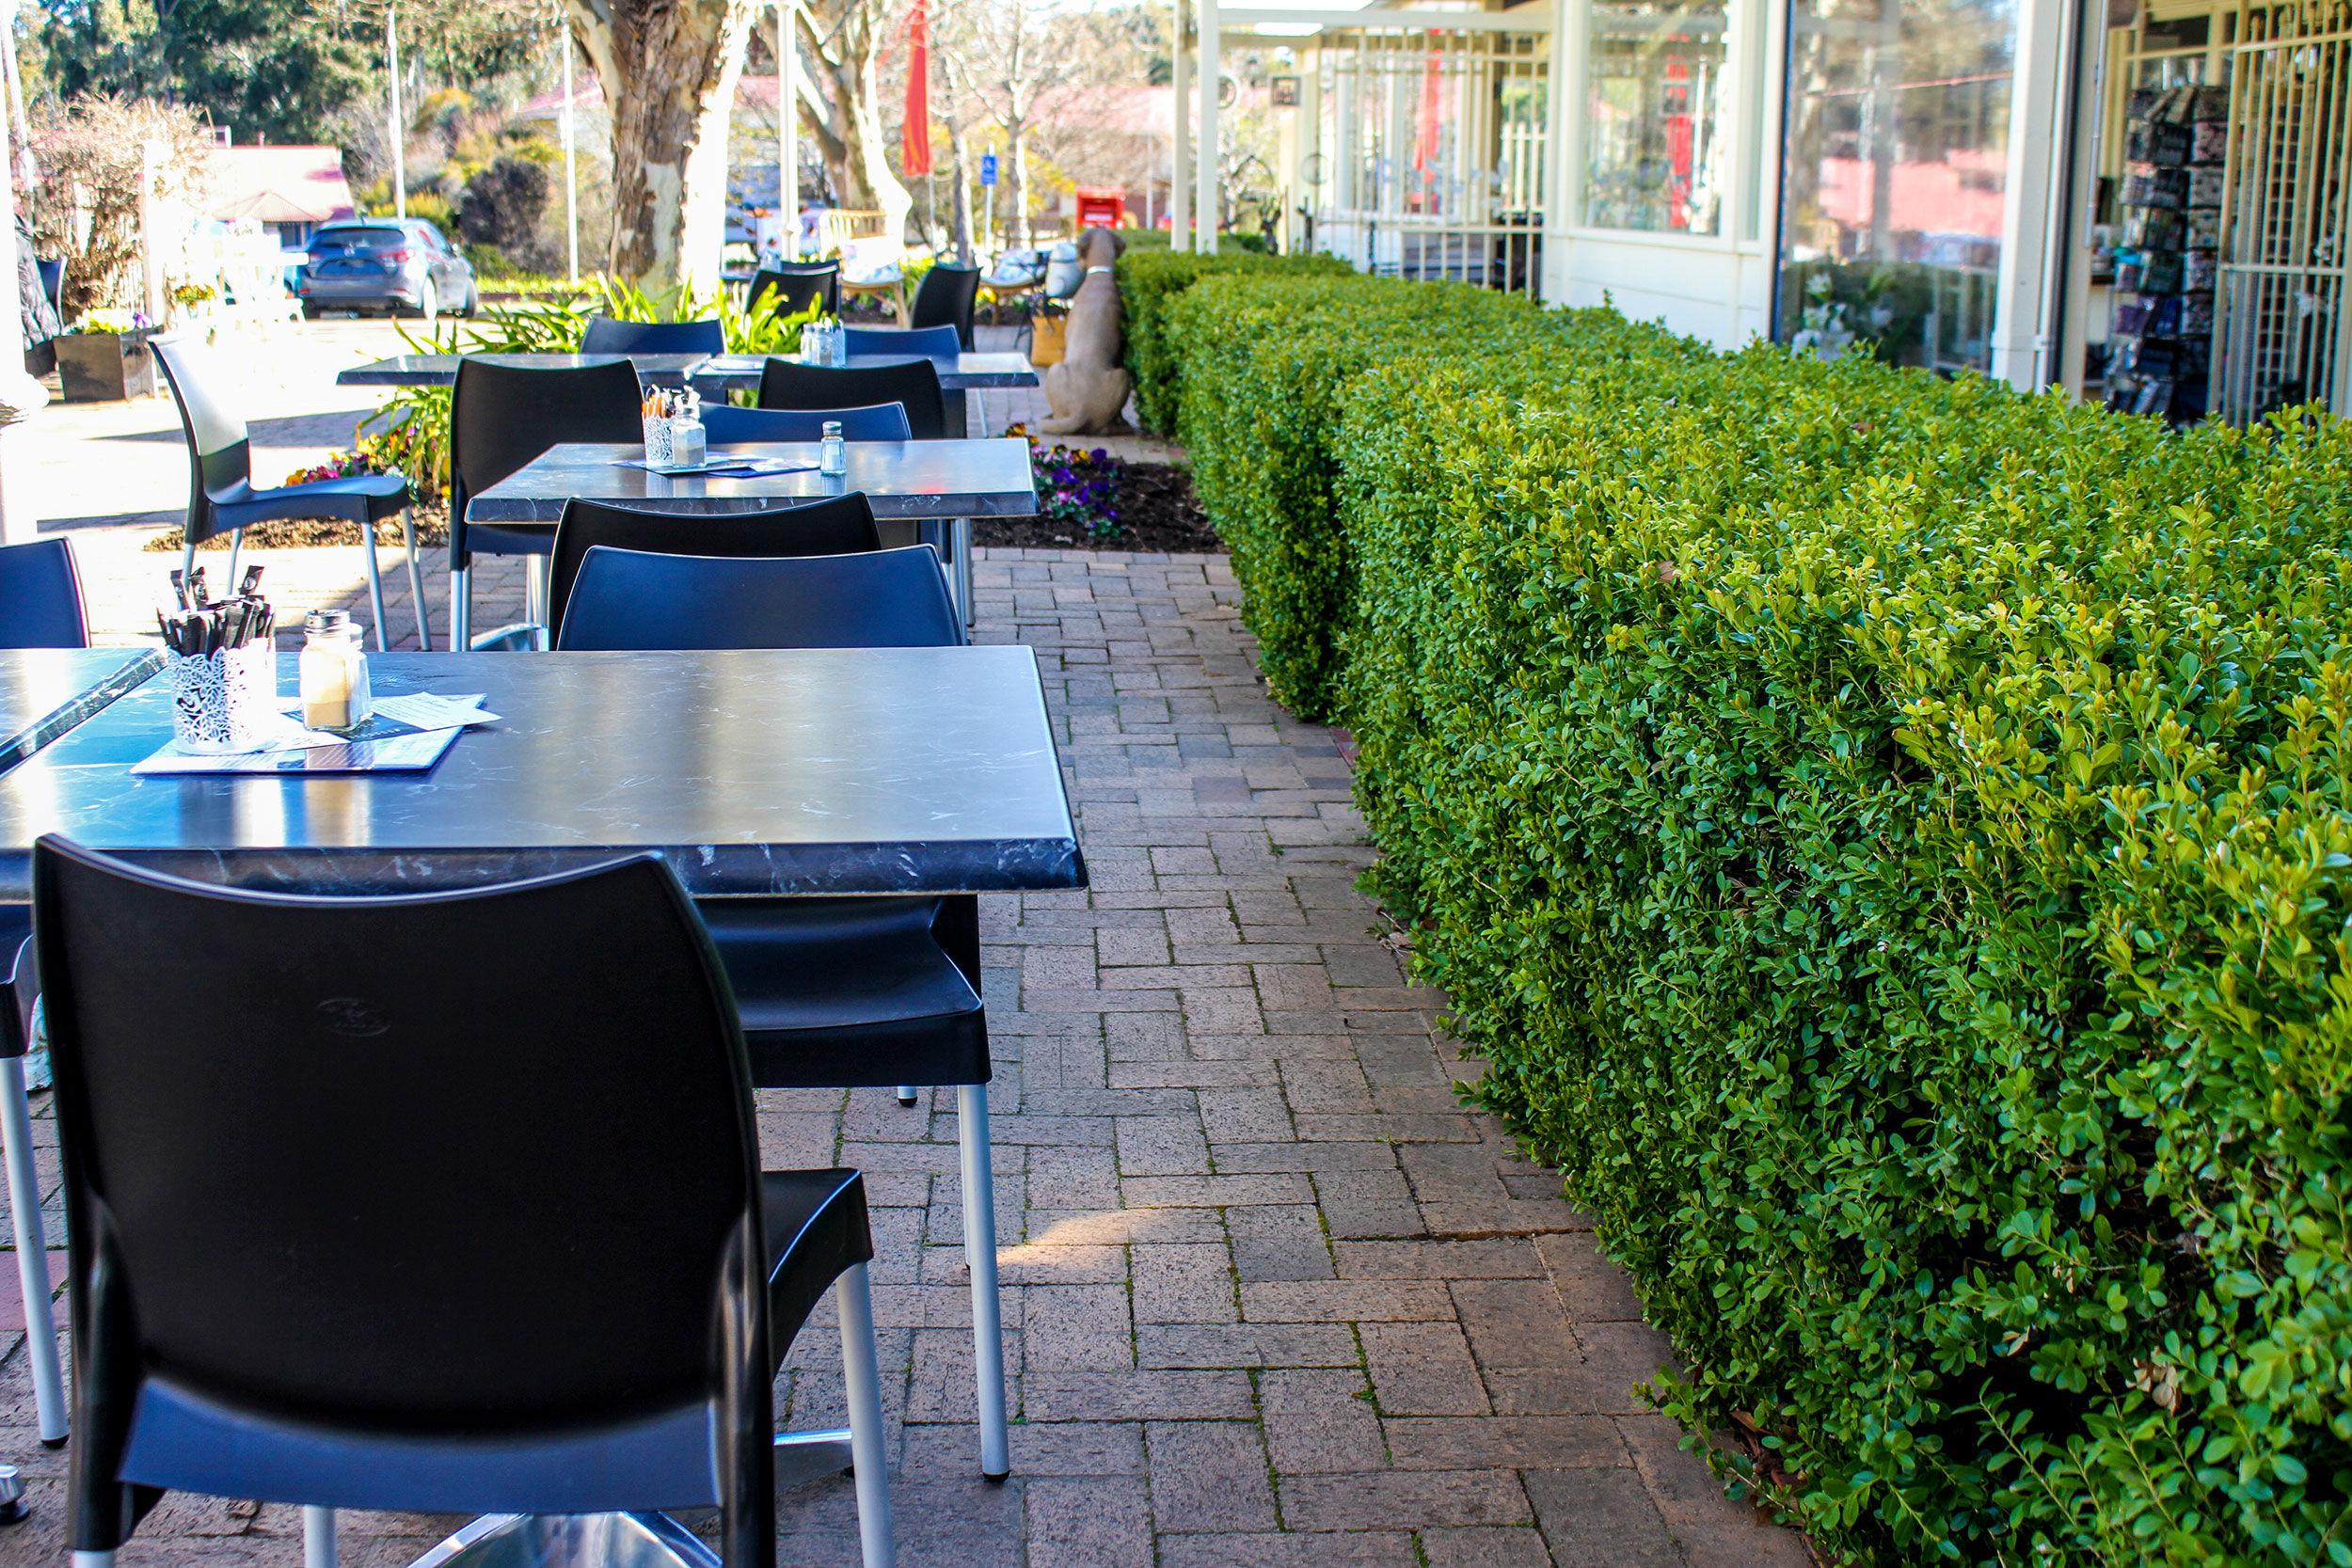 Name : The Hungry Bird Cafe - Canberra